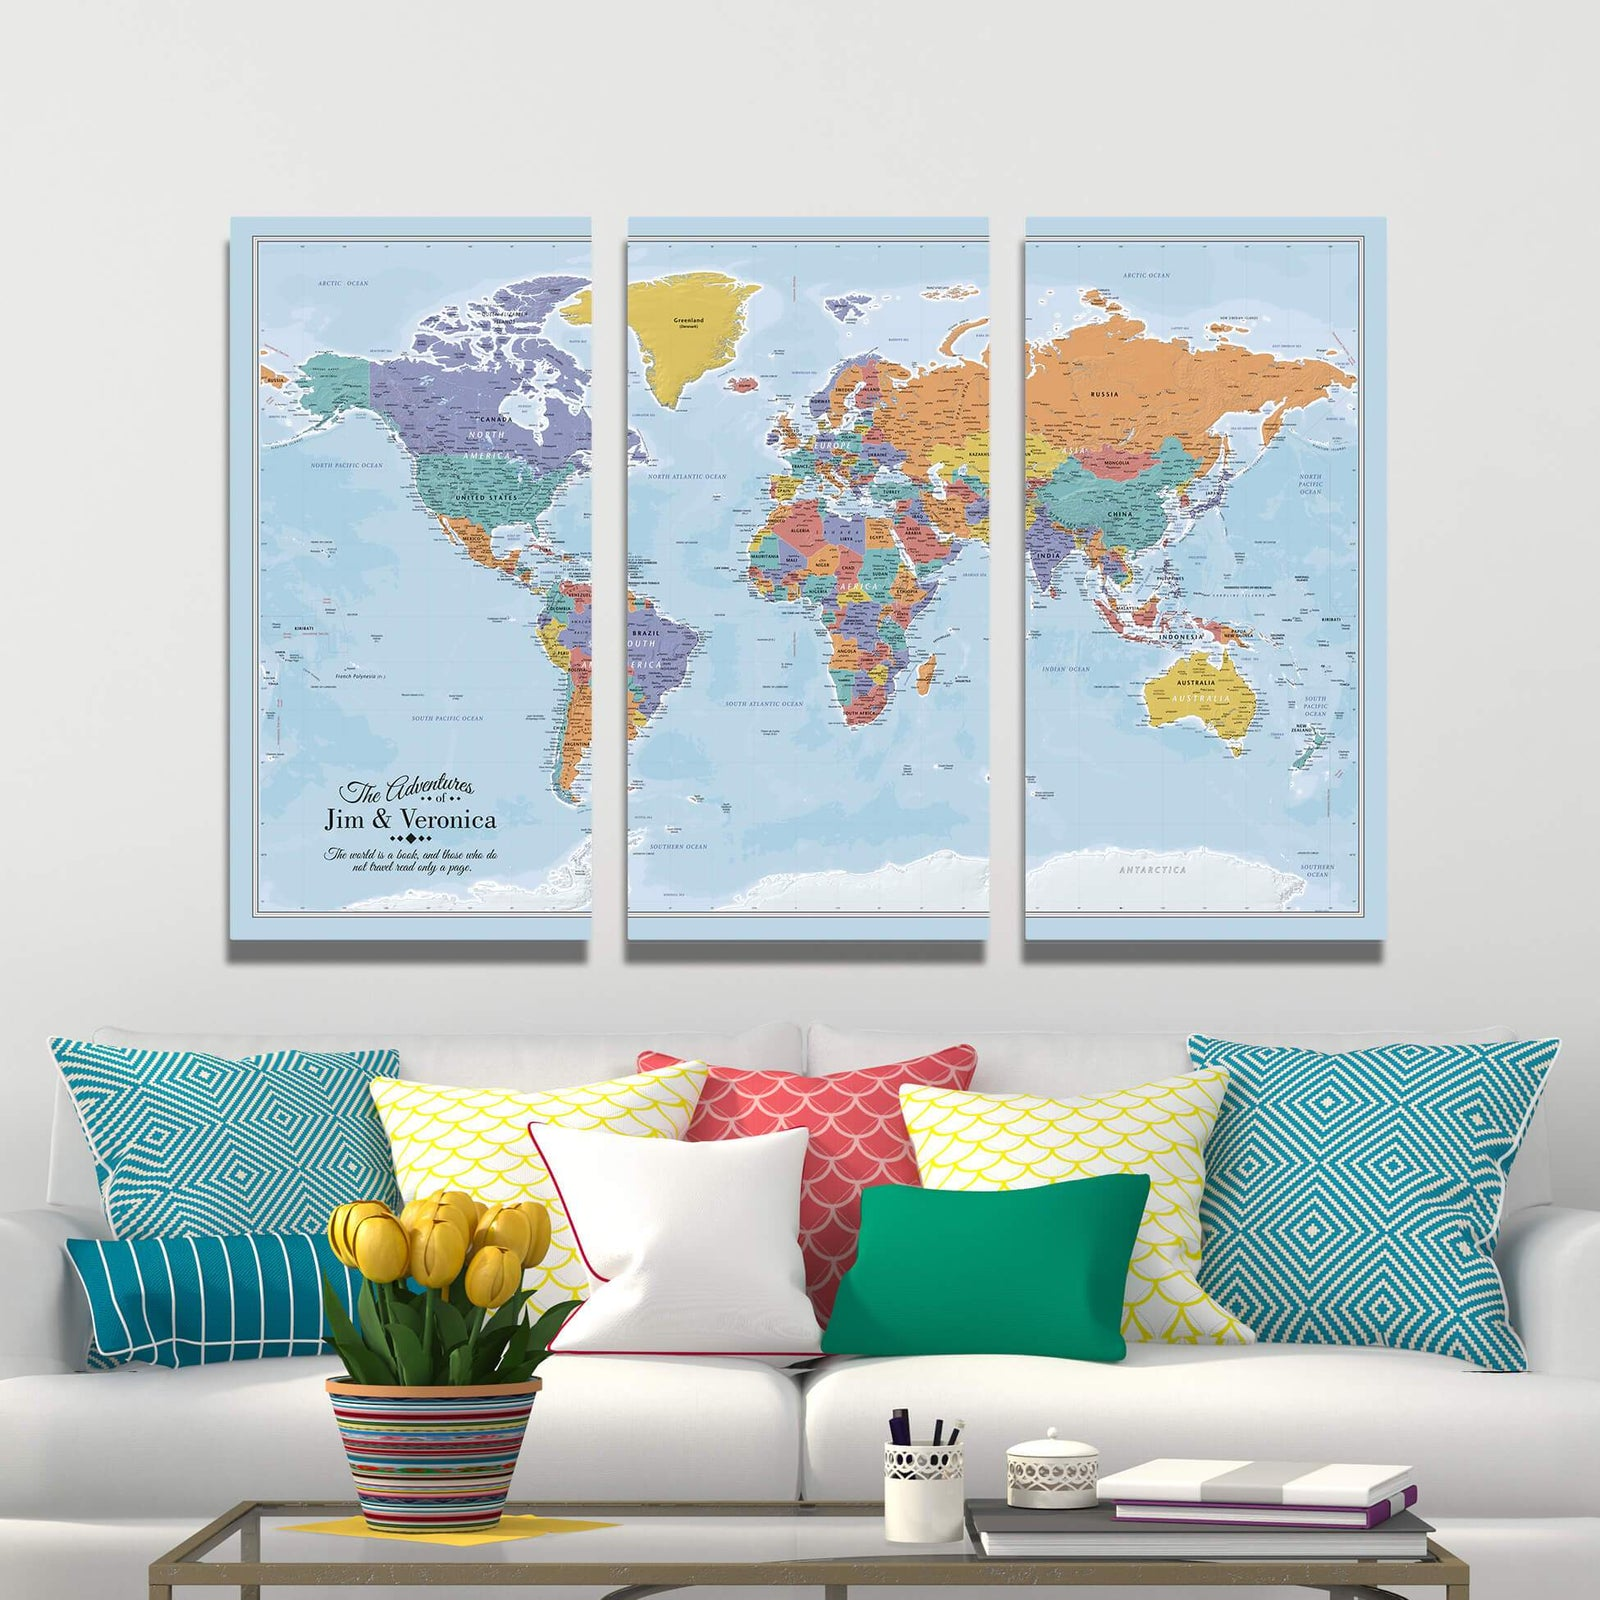 Framed And Personalized World Travel Maps With Pins Push Pin Maps - Personalized-us-travel-map-with-pins